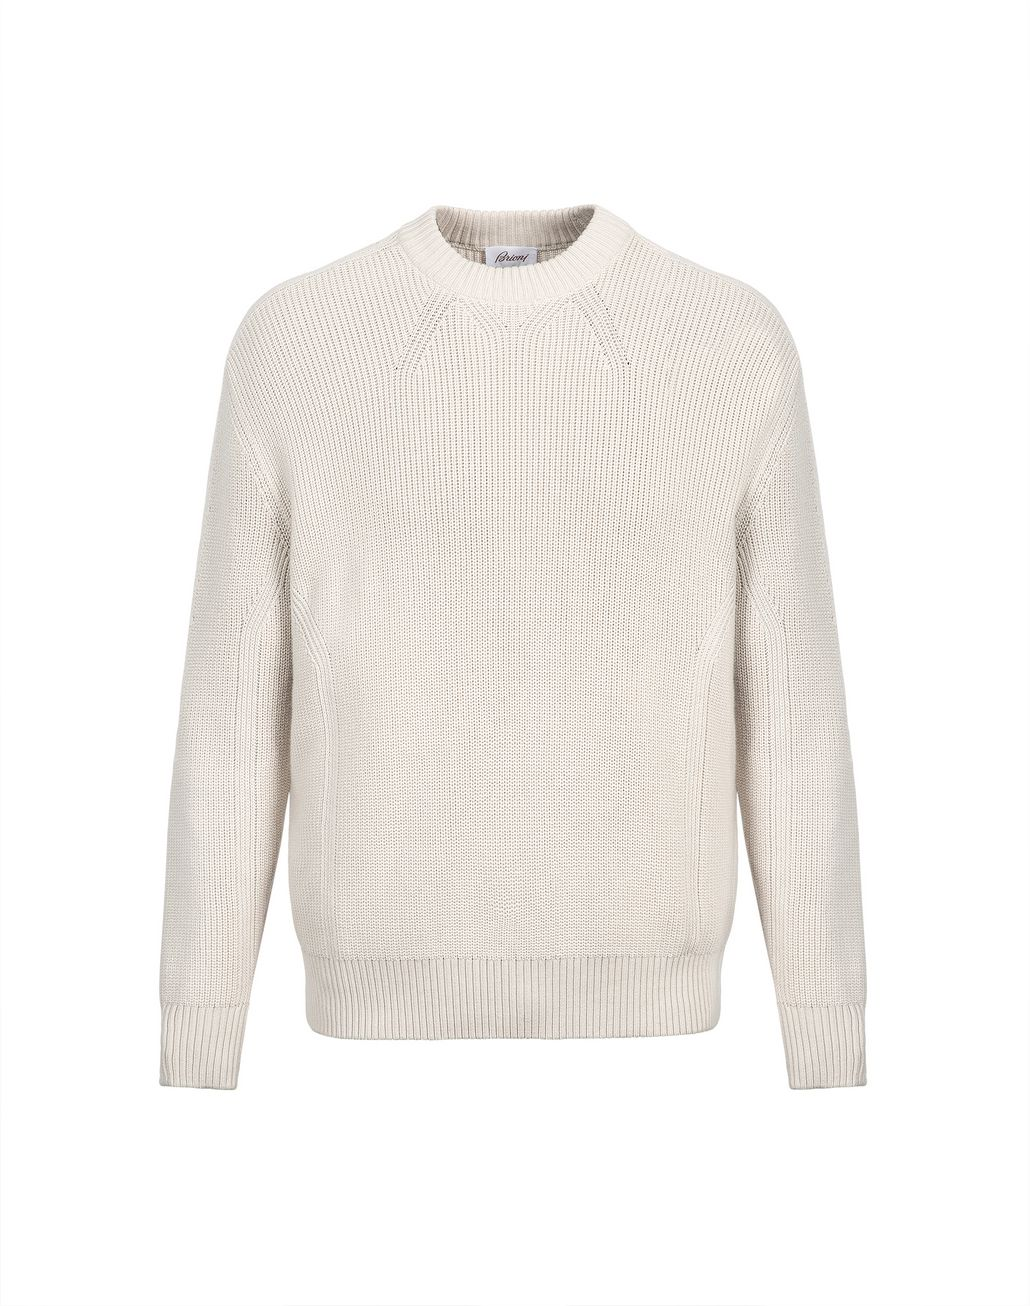 BRIONI Ivory Oversized Fit Sweater Knitwear [*** pickupInStoreShippingNotGuaranteed_info ***] f